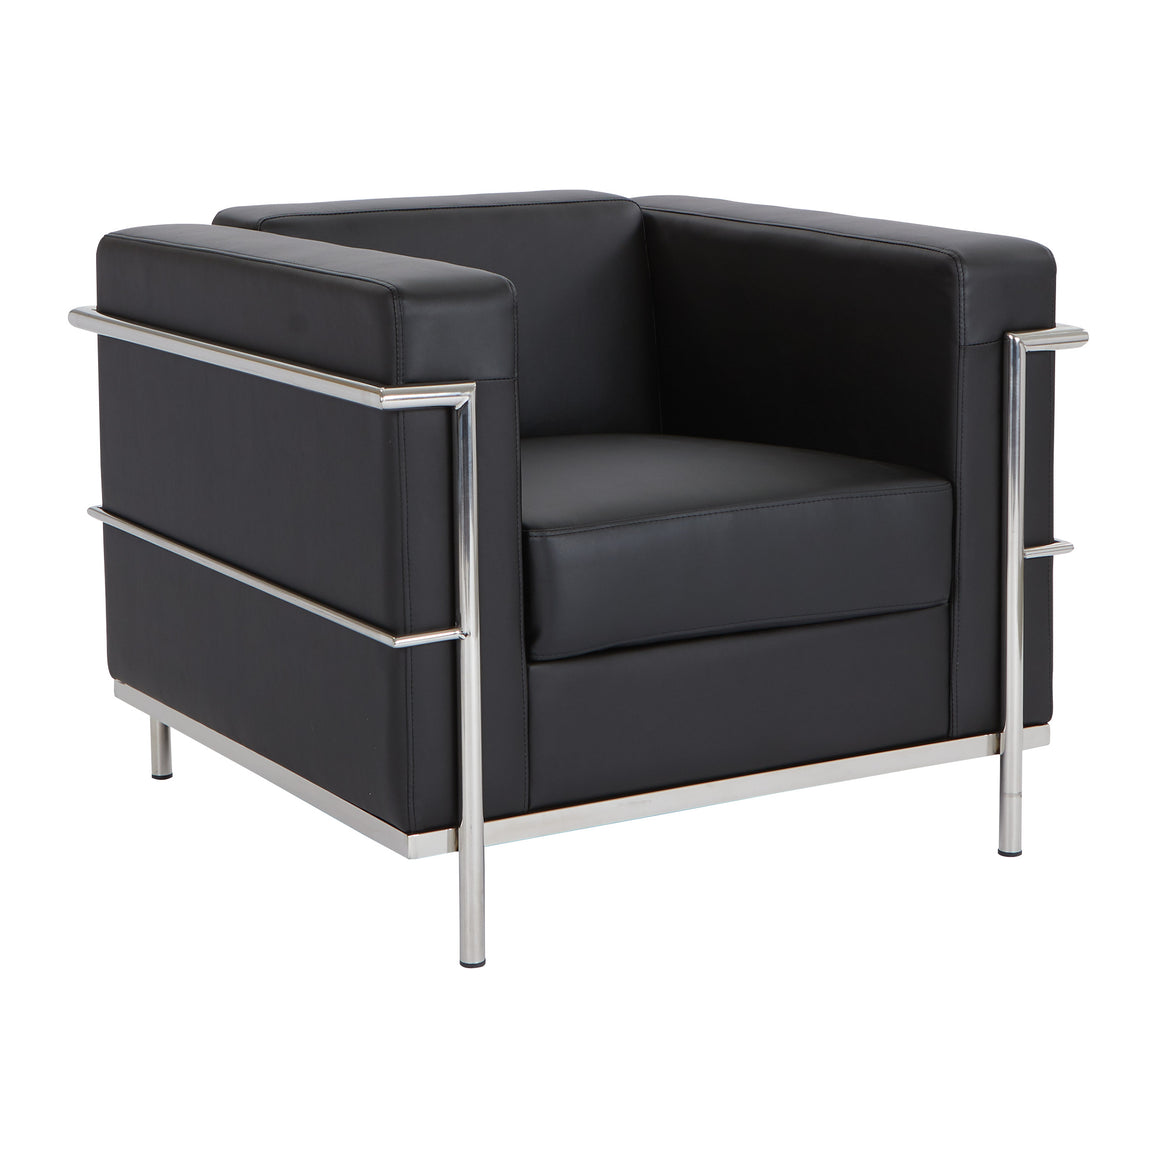 Bonded Leather Modern Lounge Chair - taylor ray decor